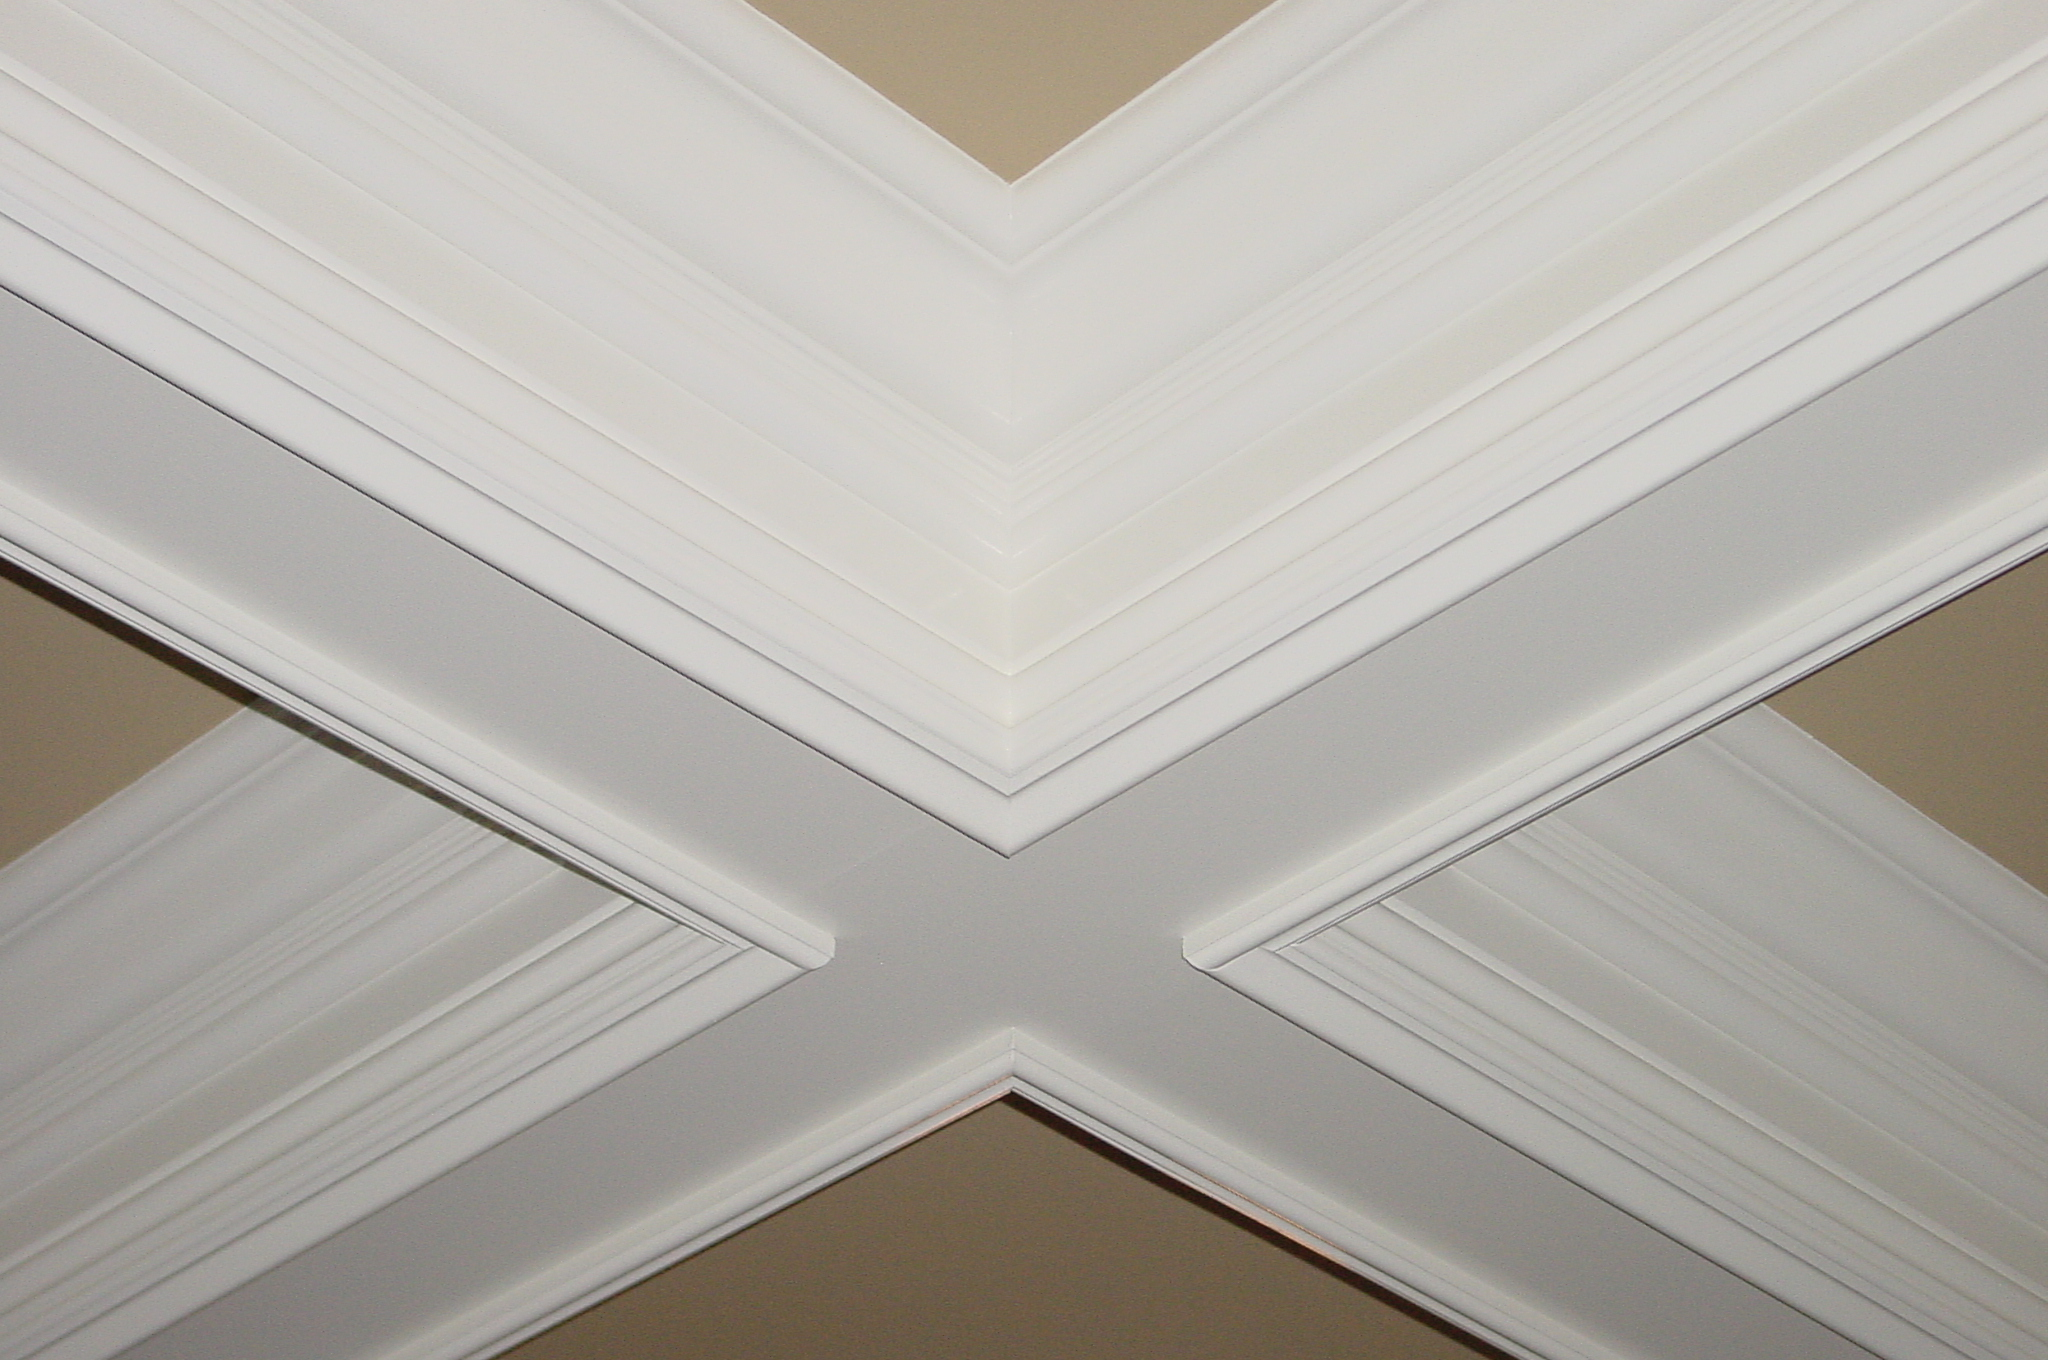 Coffered Ceiling in white and tan for more beauiful ceiling